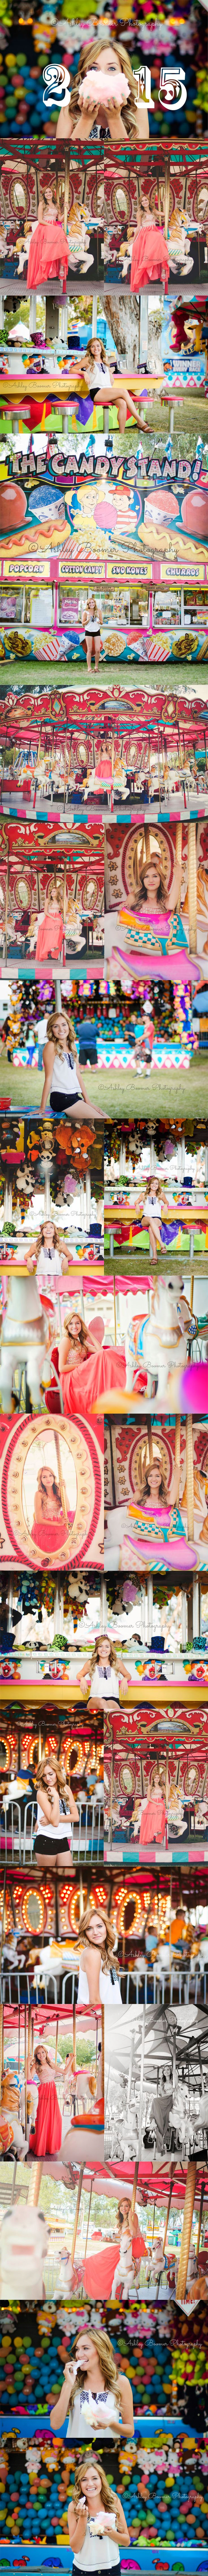 Ashley Boomer Photography | Carnival, Fair, Carousel, Whimsical, Senior Pictures | Fun, Colorful, Beautiful, Vibrant, Cotton Candy, High School, Photography, California Photographer